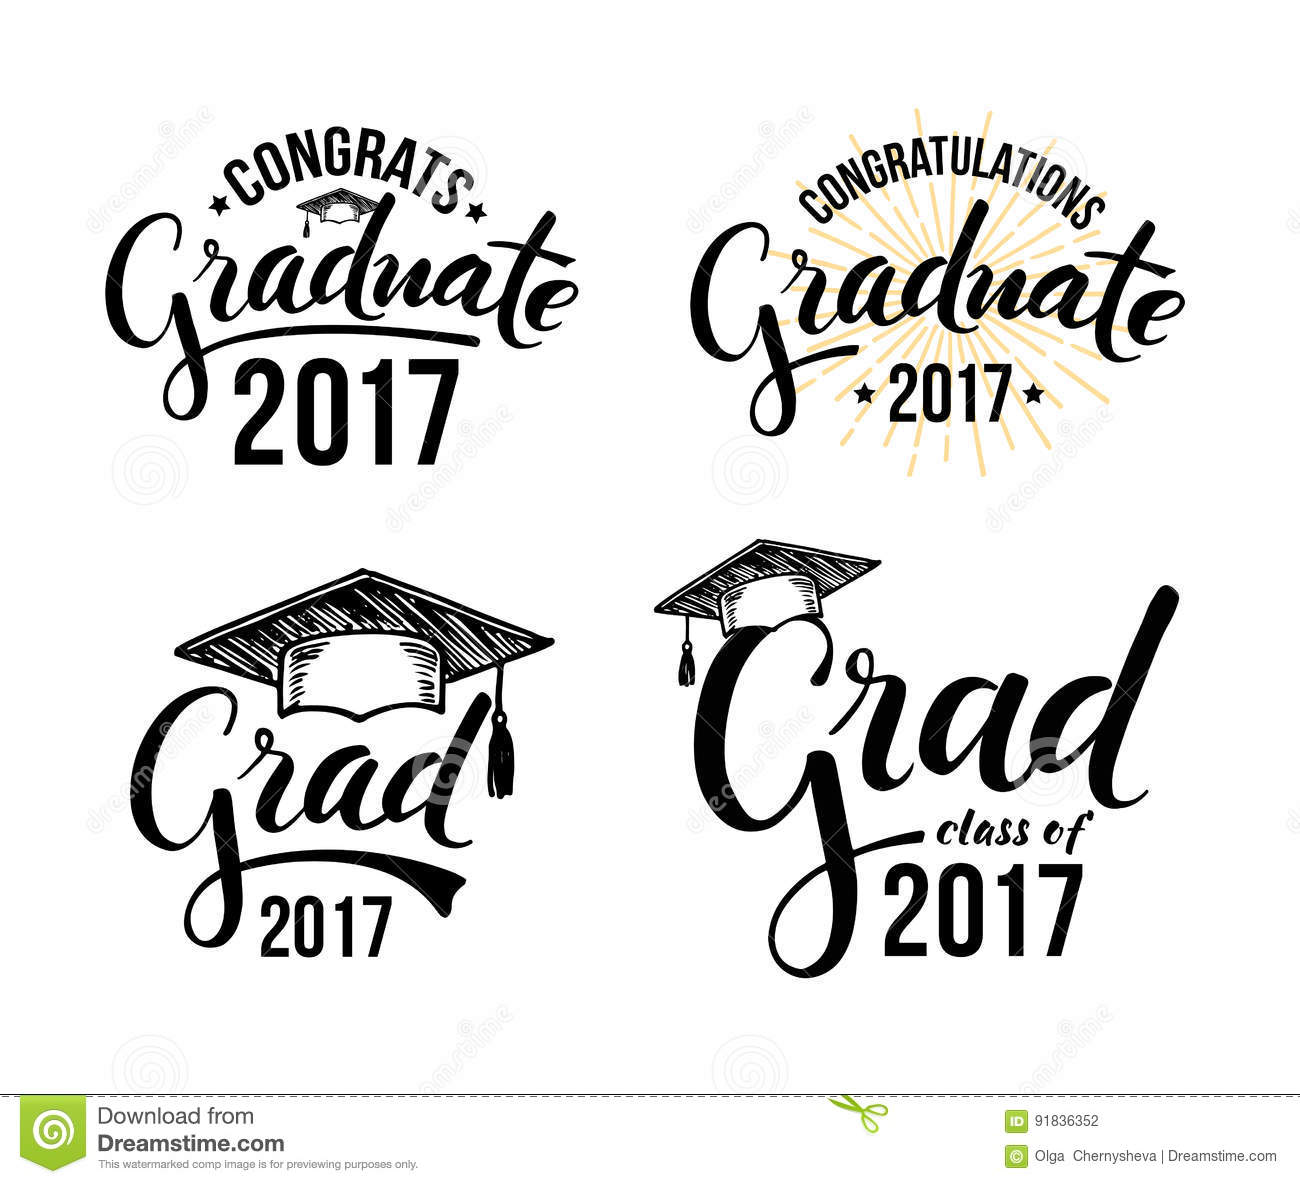 Congratulations Graduate 2017 Stock Vector.